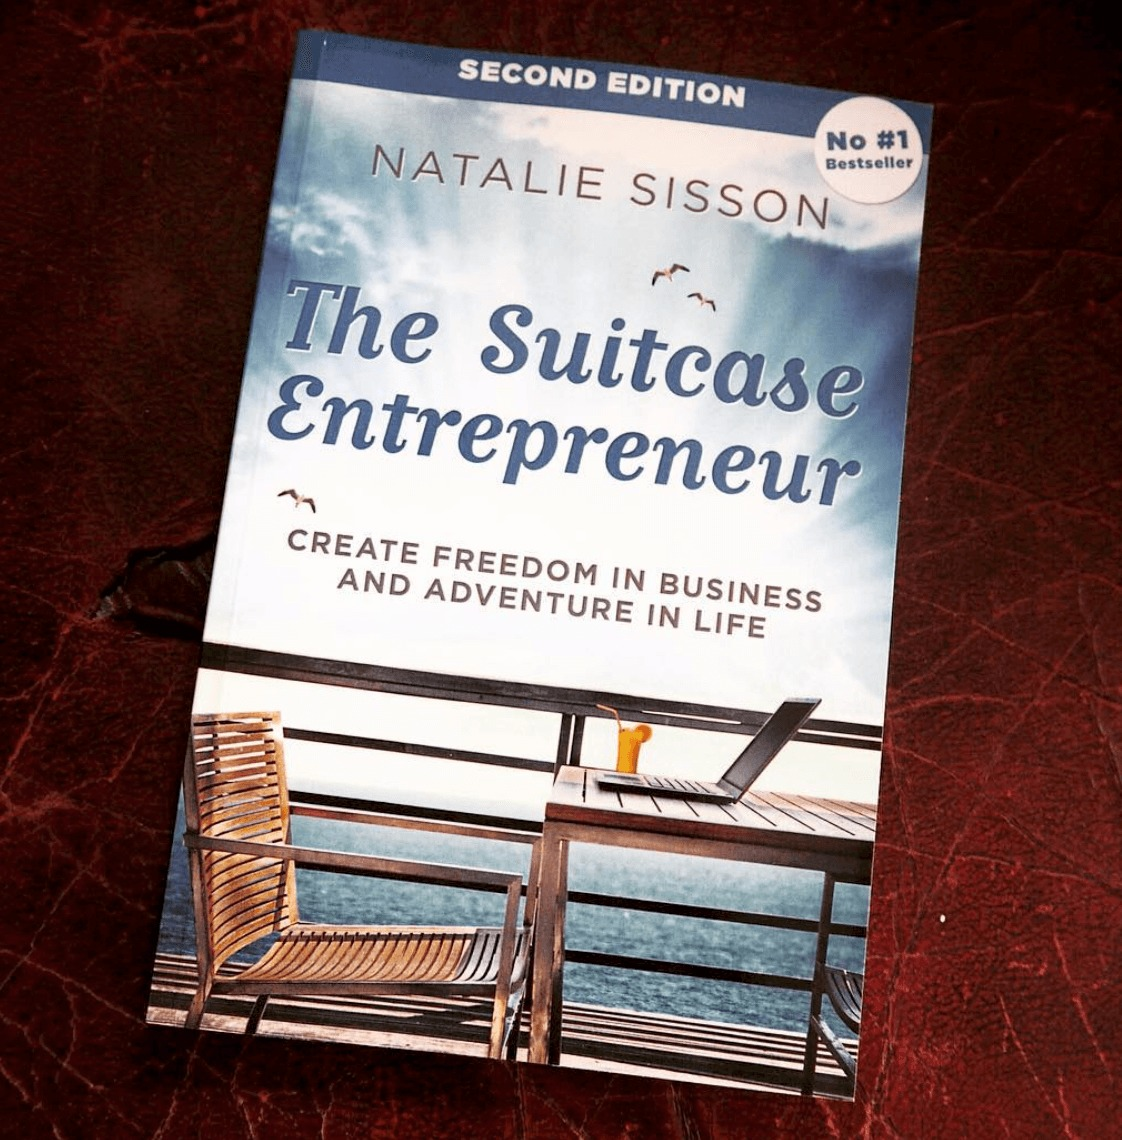 The Suitcase Entrepreneur by Natalie Sisson.